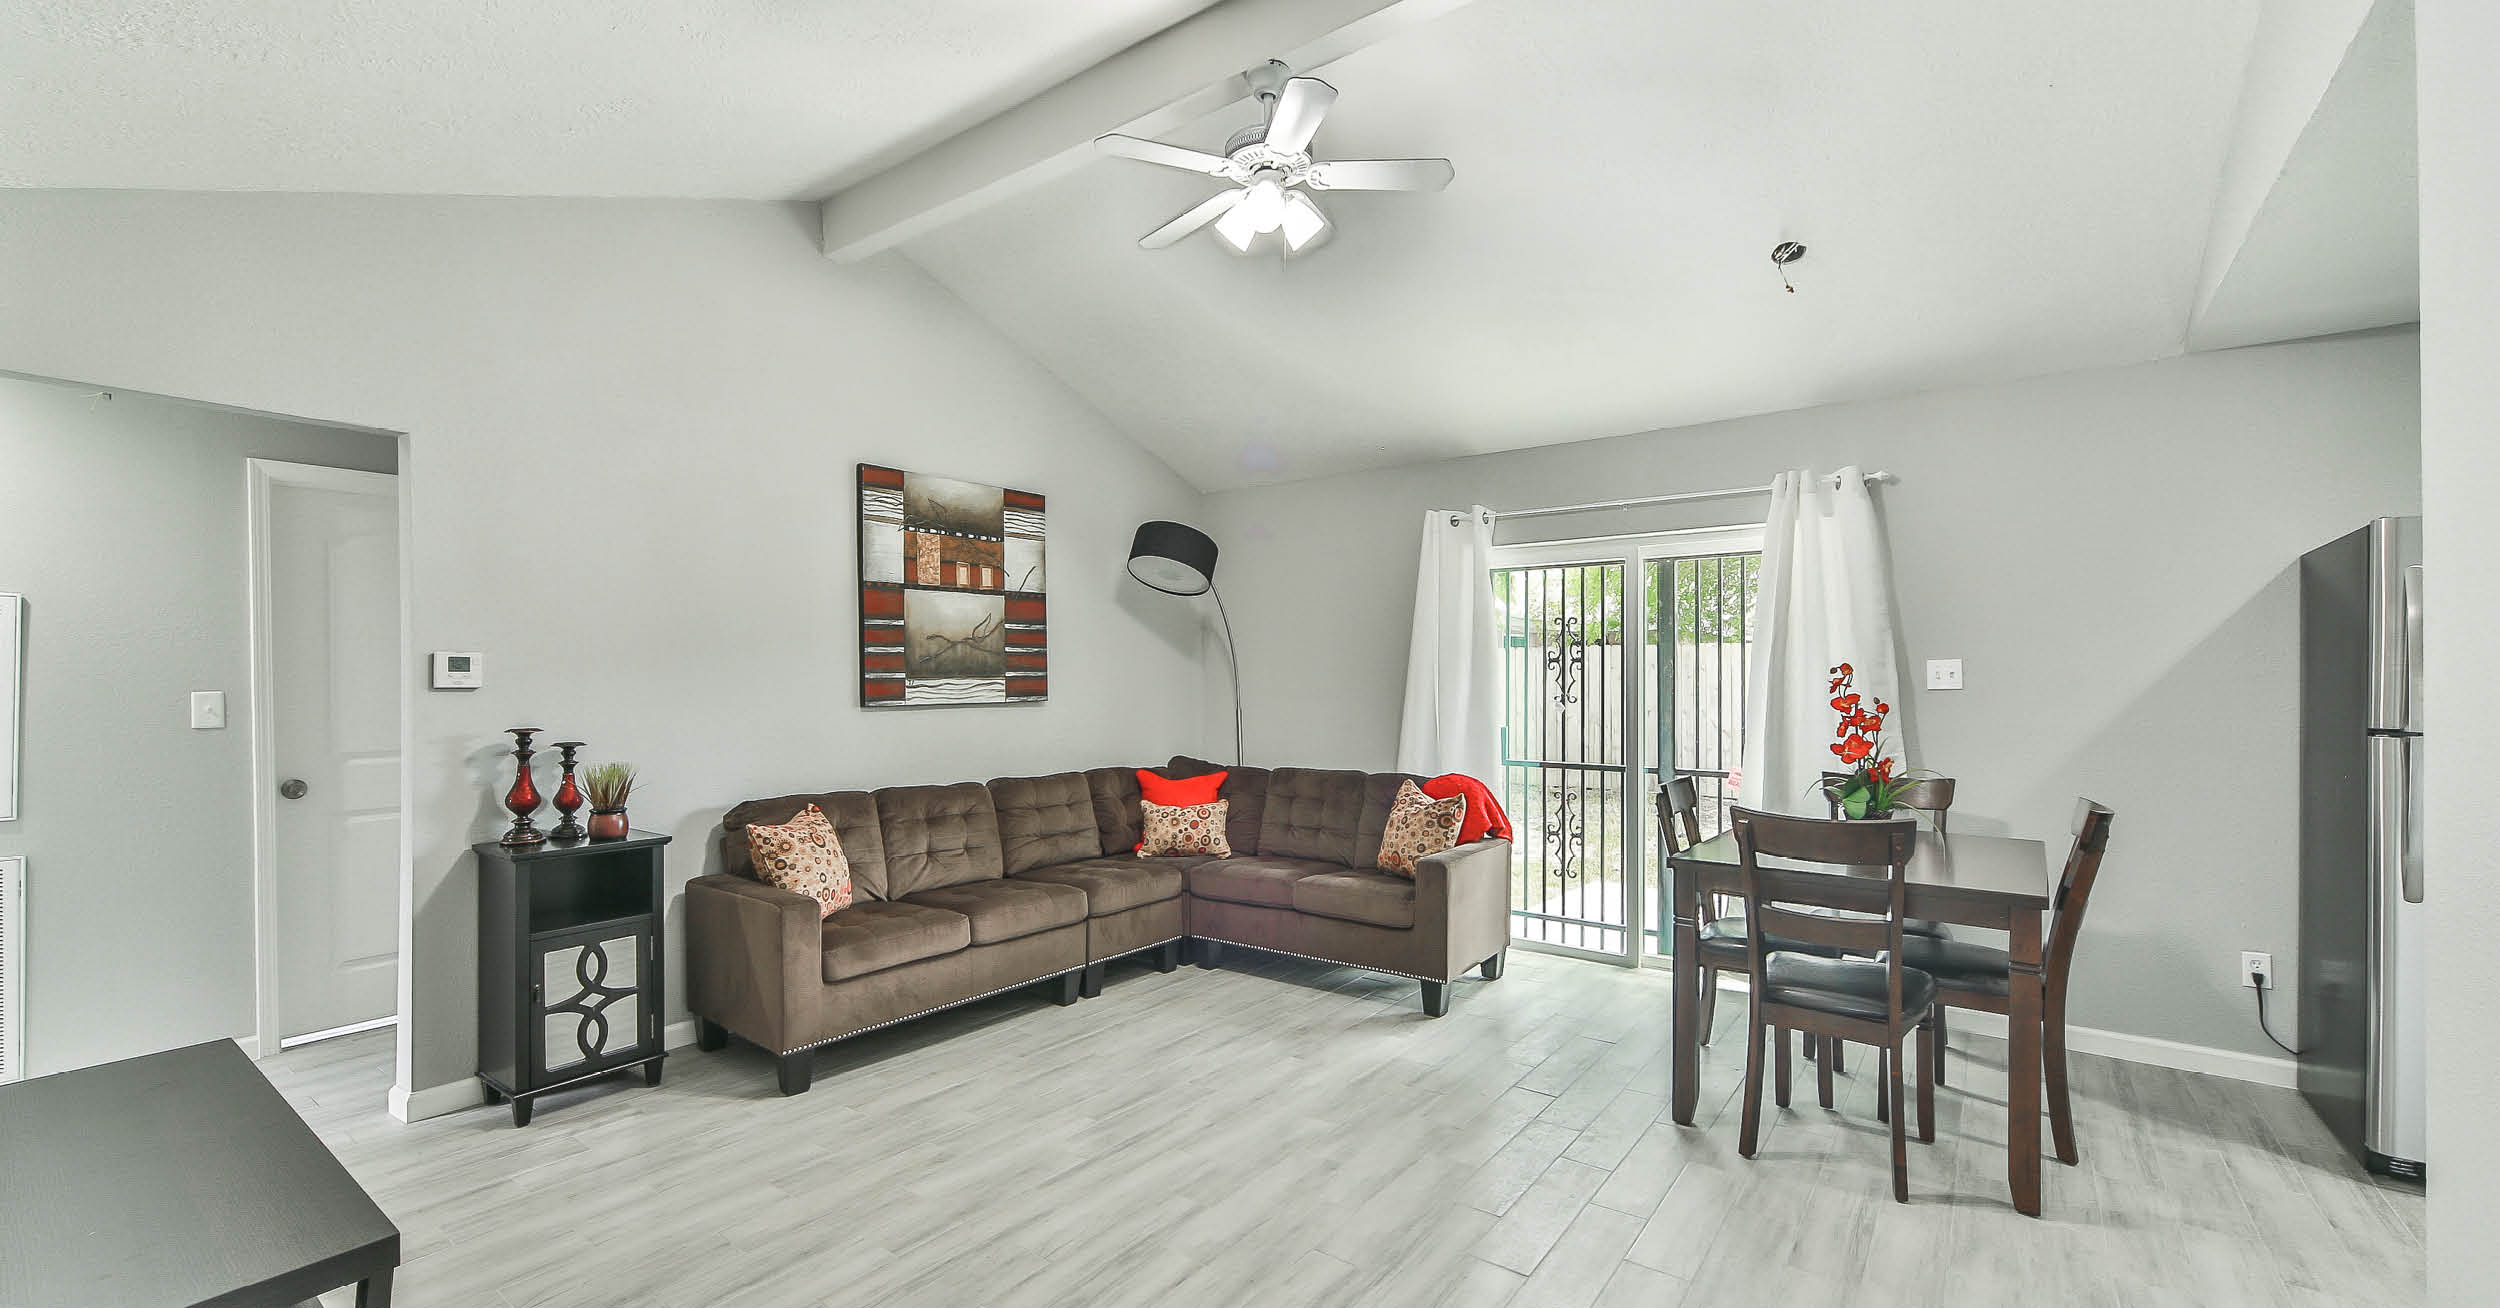 Houston Family's Home Transformed by Non-Profit TLG Gives